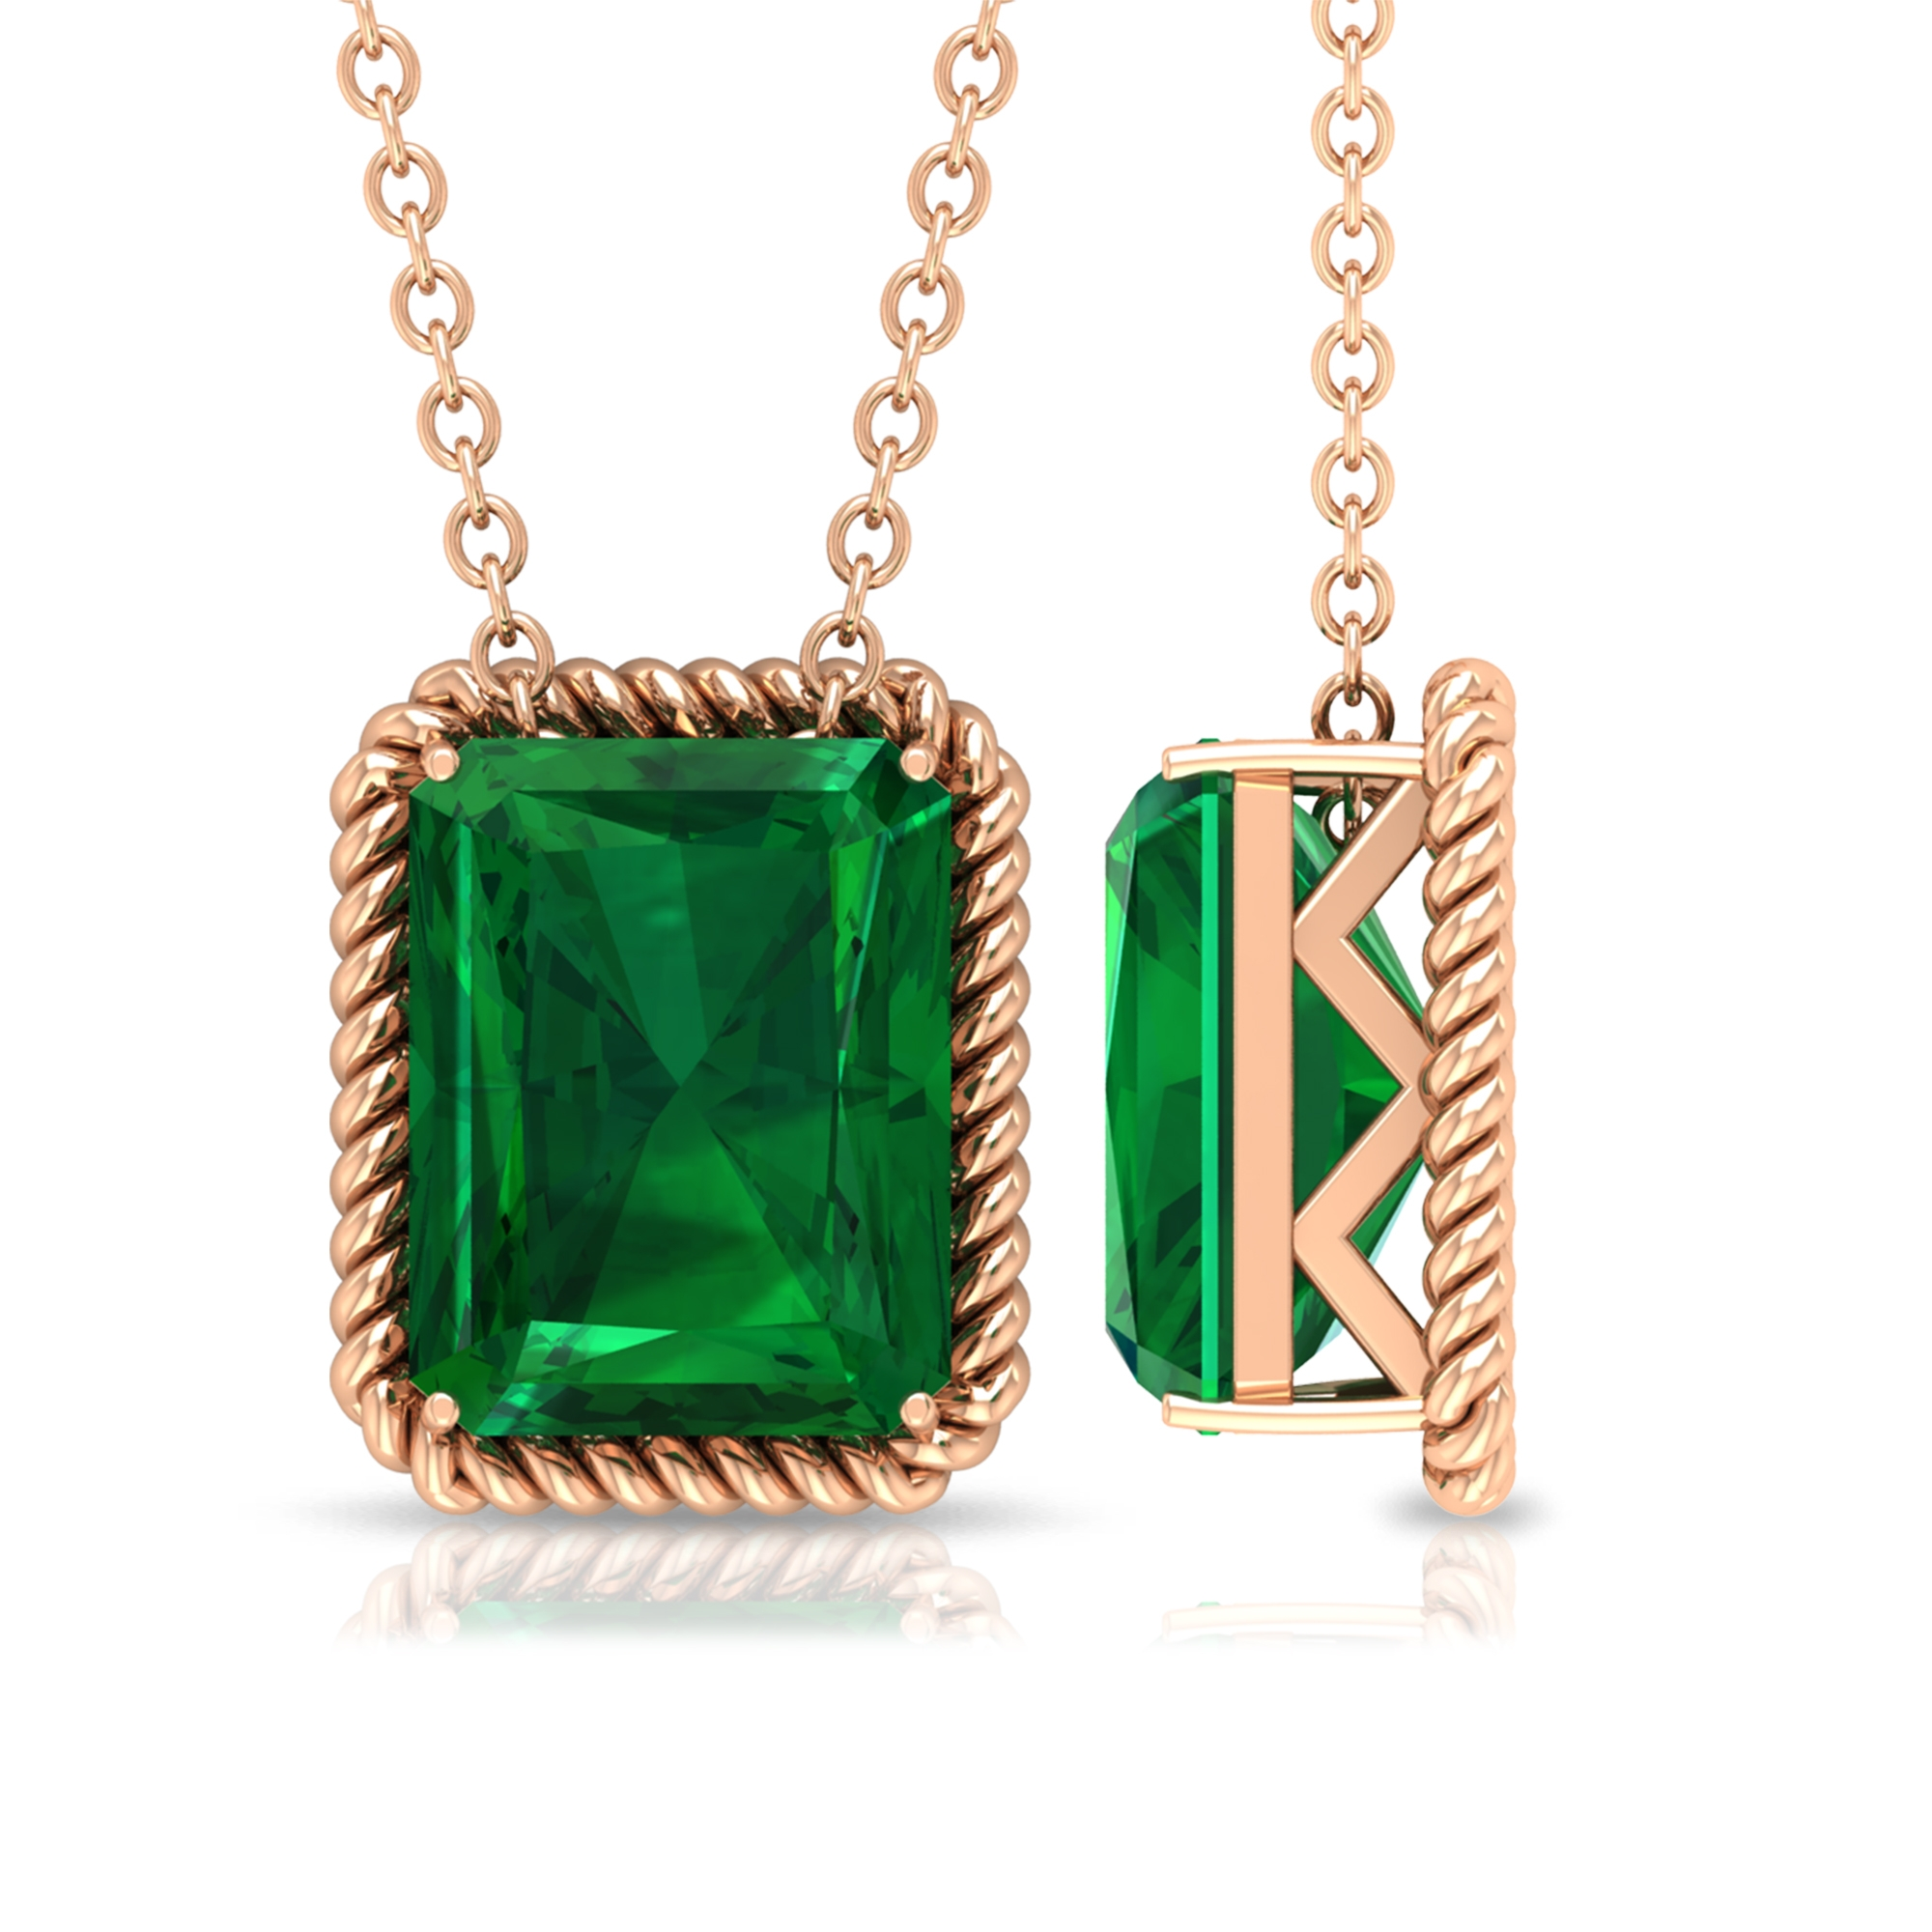 9X7 MM Octagon Cut Emerald Solitaire Necklace in Prong Setting with Rope Frame Details